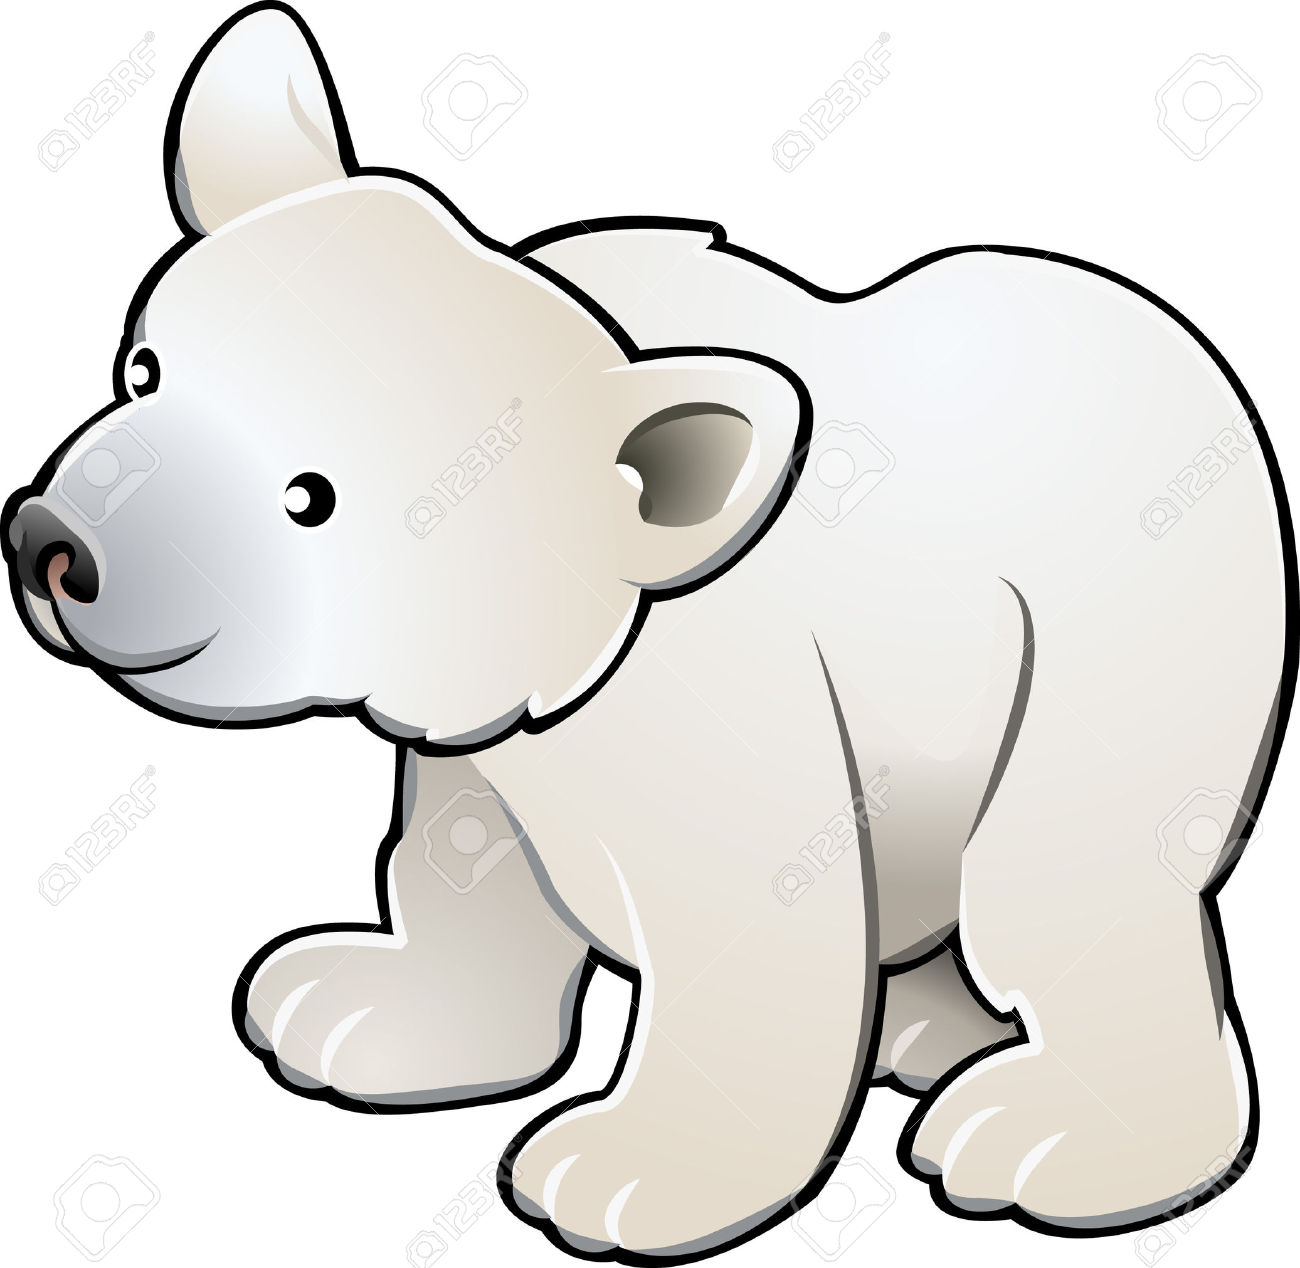 polar bear clipart at getdrawings com free for personal use polar rh getdrawings com polar bear clipart clipart polar bear free